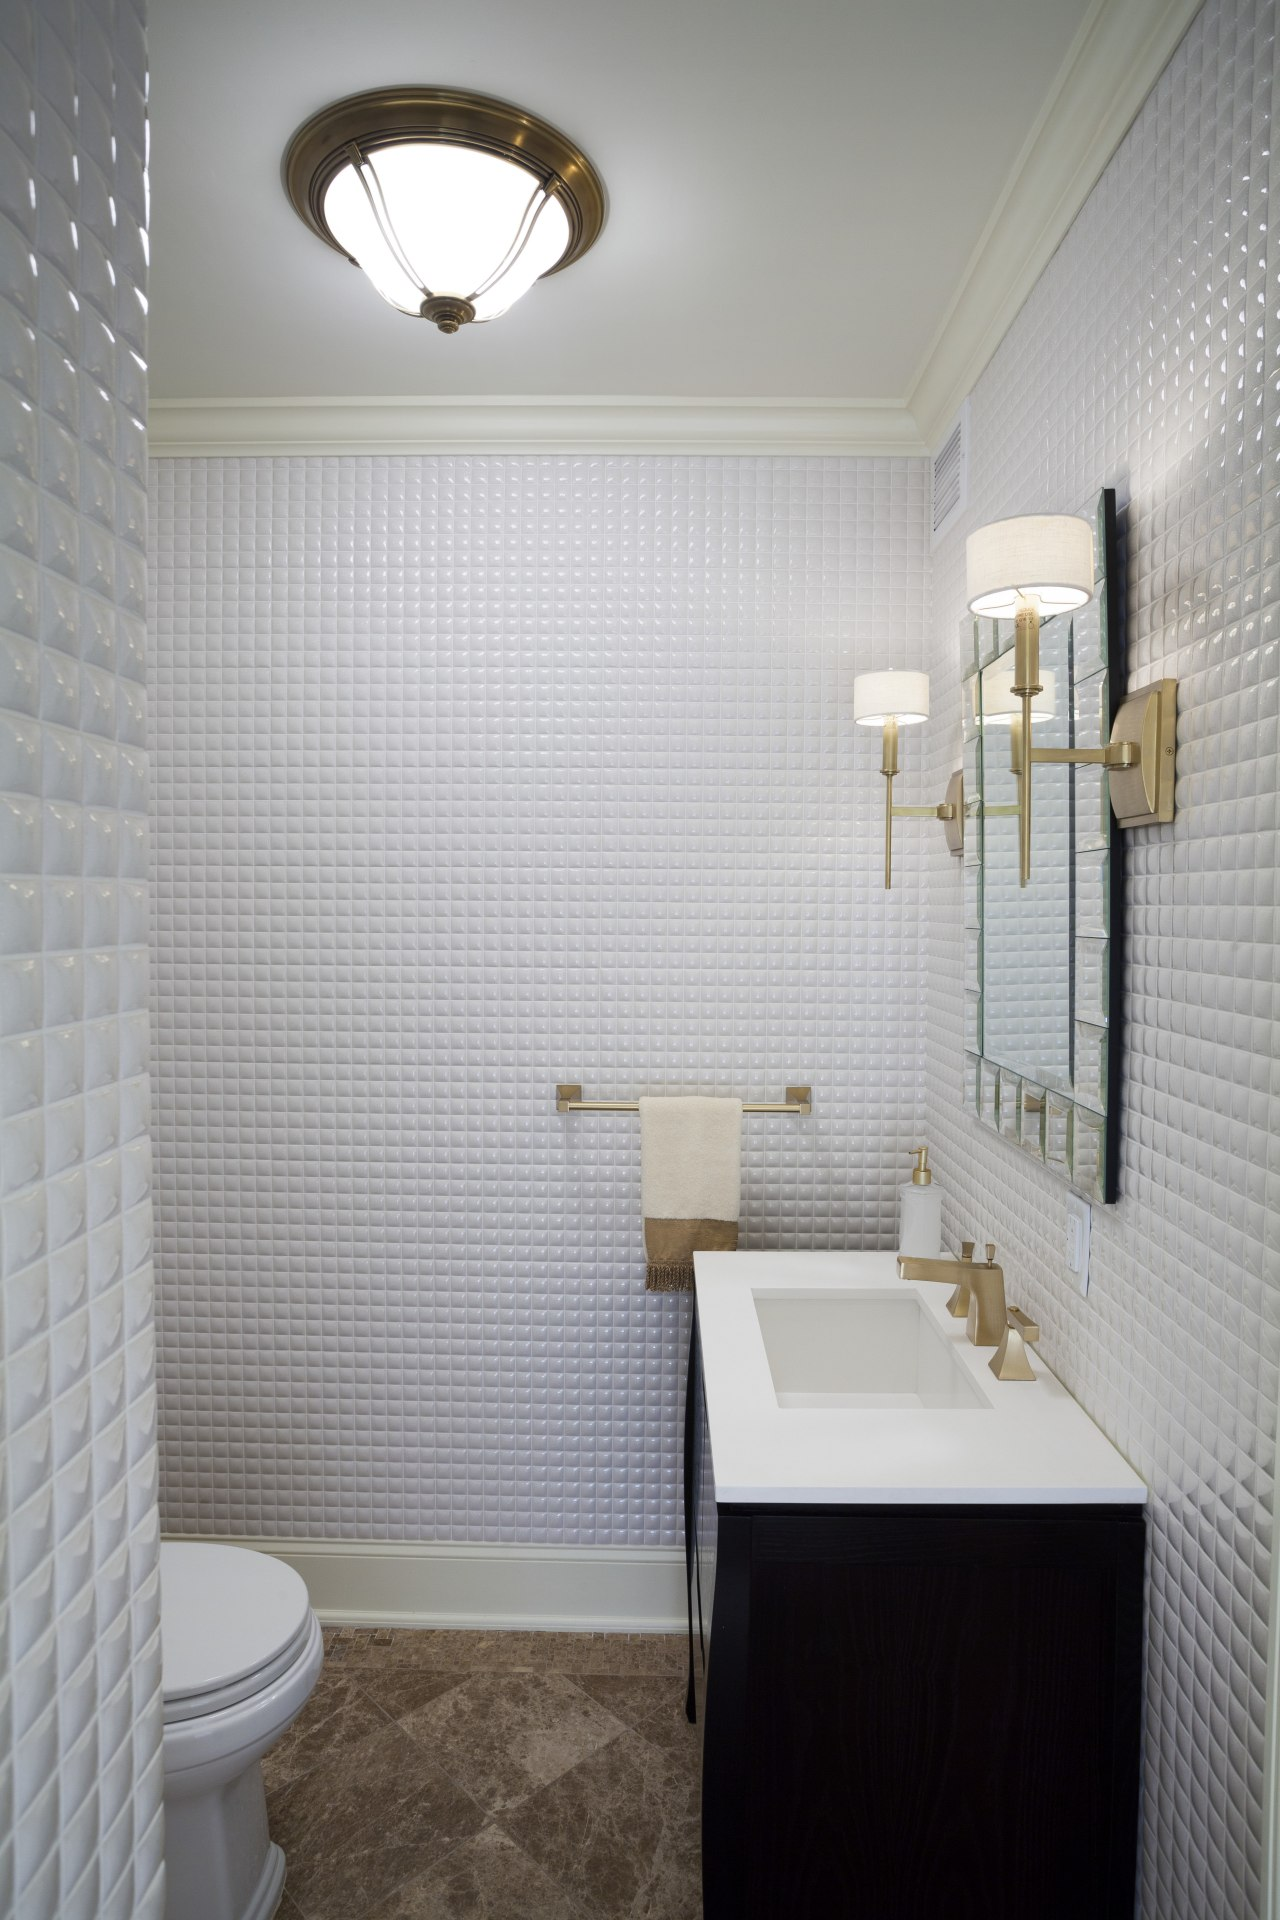 With its floor-to-ceiling glossy white mosaic tiles, this architecture, bathroom, ceiling, daylighting, floor, flooring, home, interior design, plumbing fixture, room, sink, tile, wall, gray